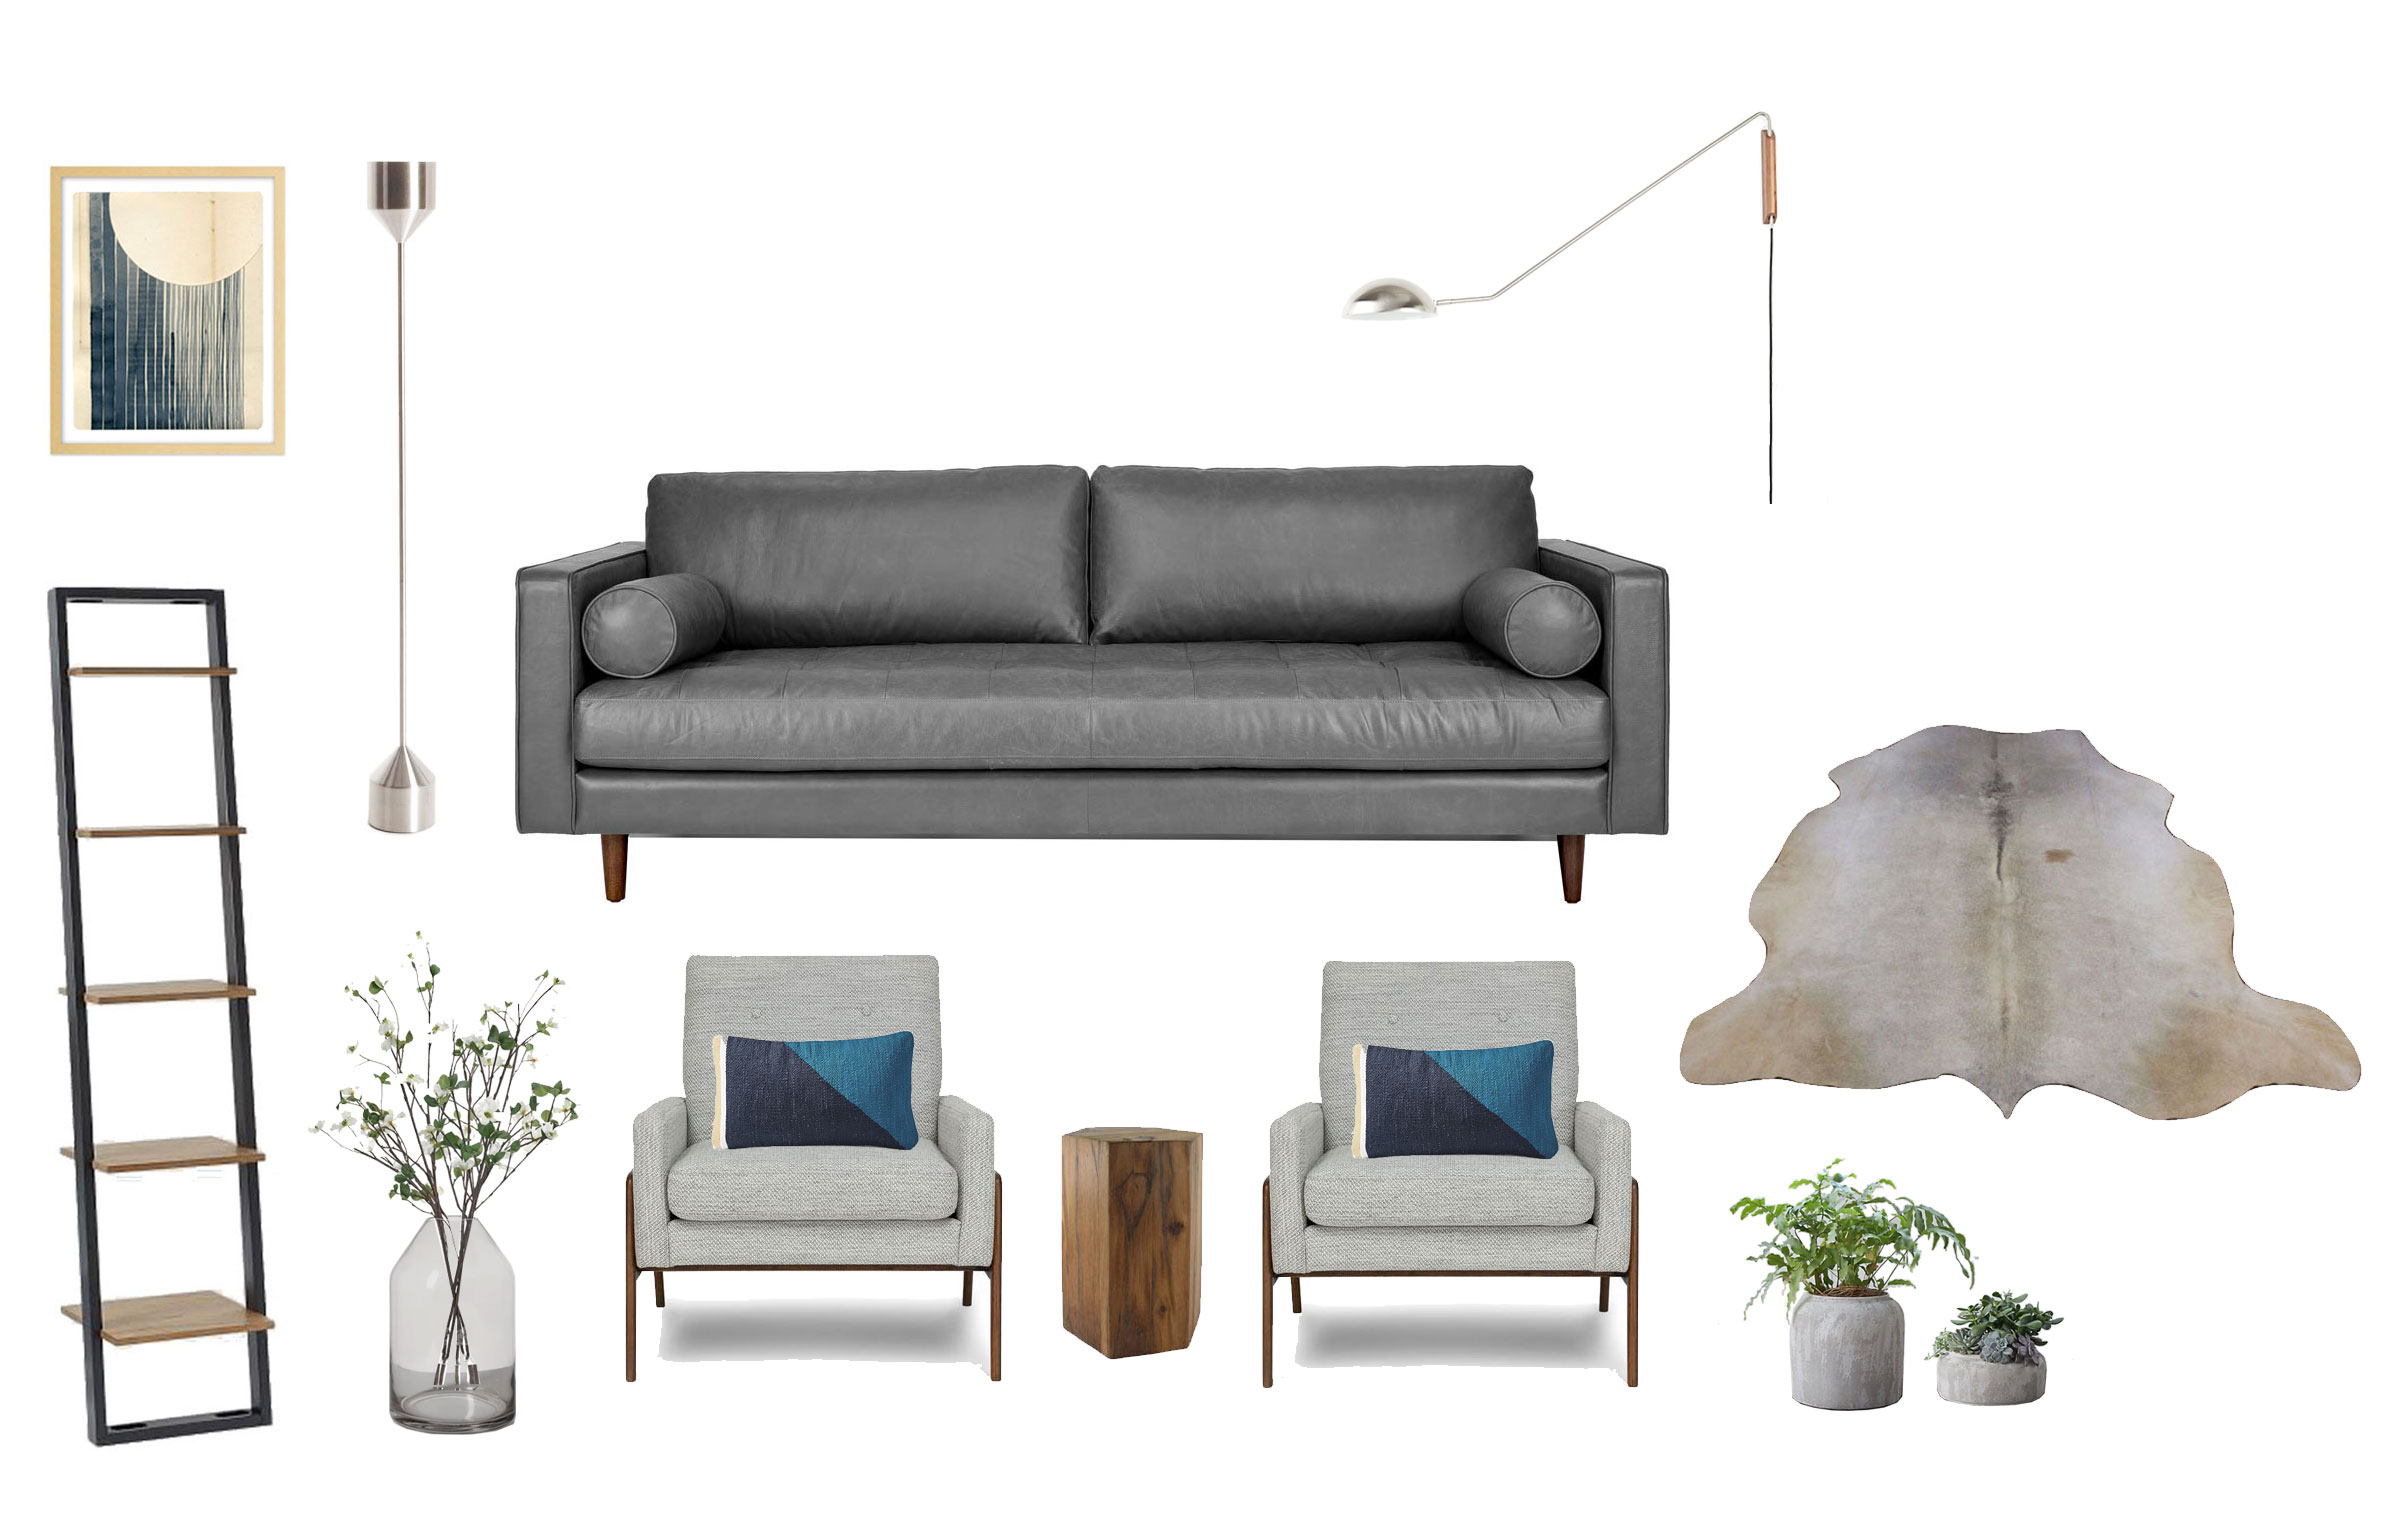 Sitting Room  Print - Not a Circle by Kate Castelli:  Industry West  | Barbell Nickel Floor Lamp, Sven Sofa and Nord Chairs:  Article  | Smoked Glass Vase: Target | Bookshelf:  West Elm  | Wood Side Table: Houzz | Nickel Swing Arm Sconce,  CB2  | Cowhide:  cowhidesinternational.com | Pillows:  West Elm